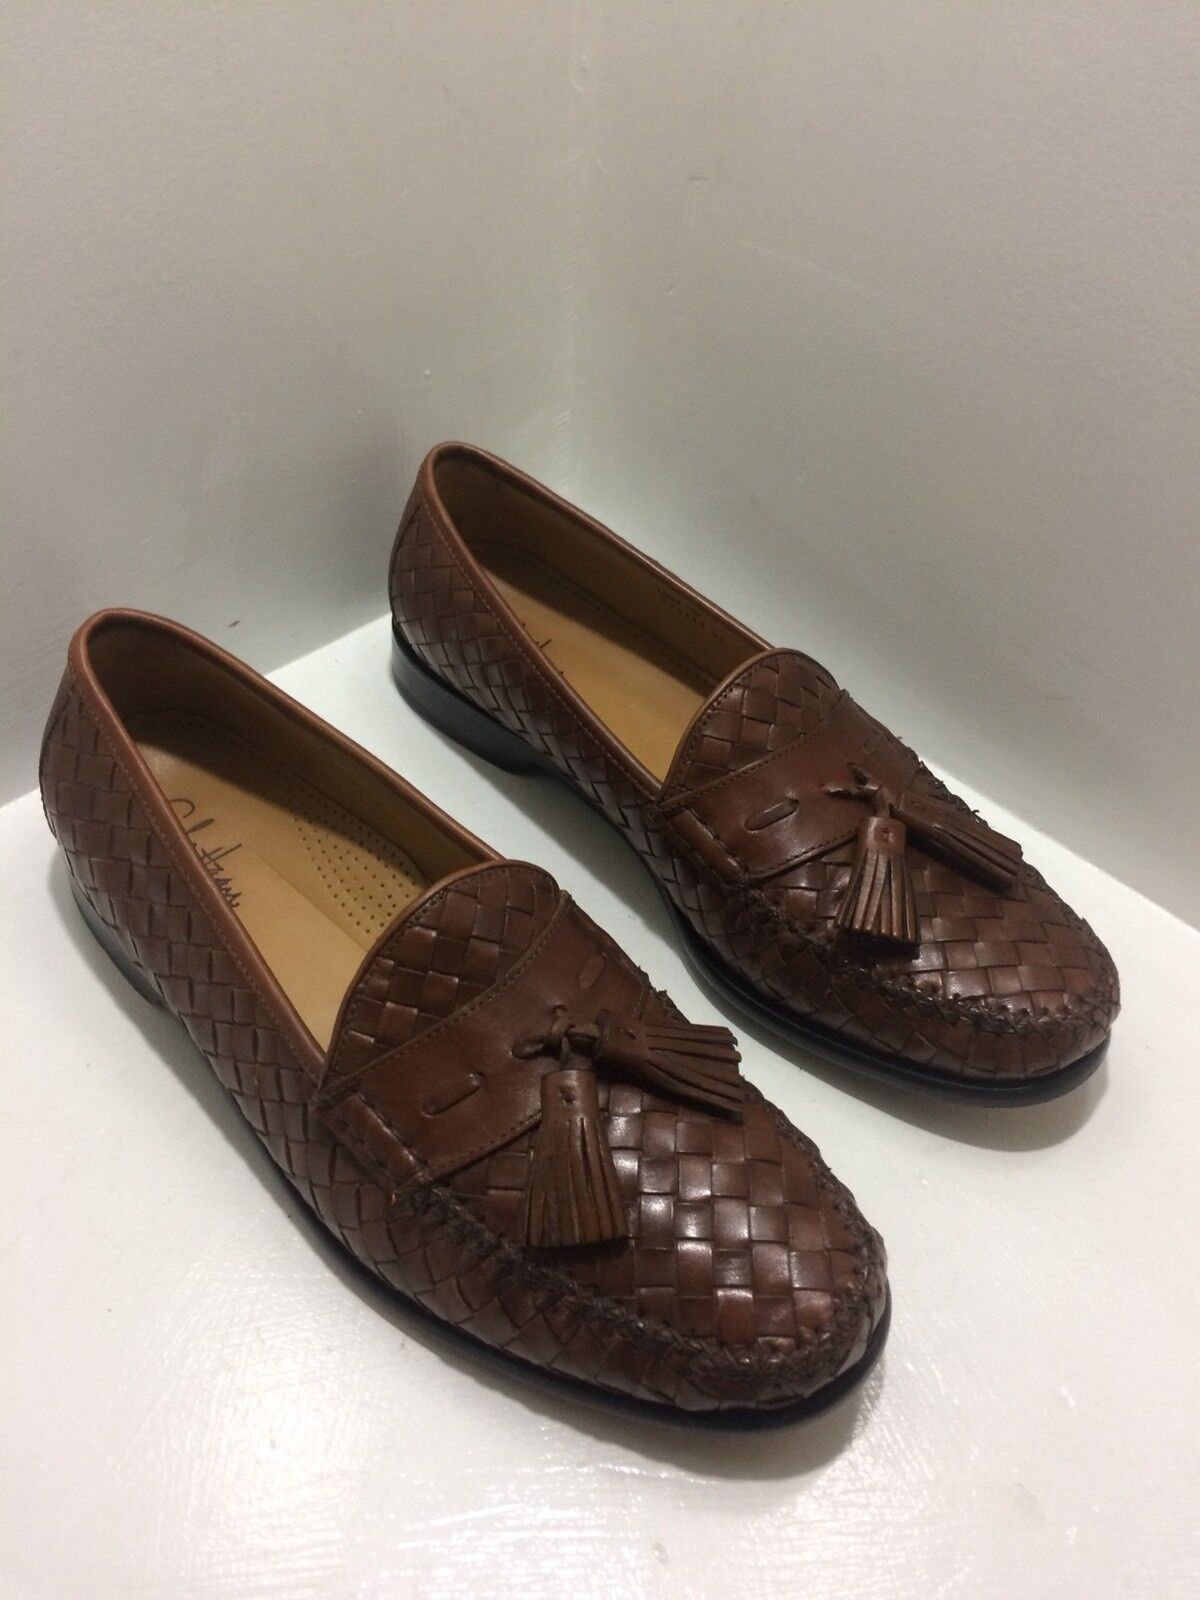 COLE HAAN Men's Cognac Leather Woven Tassel Loafers Size 11M